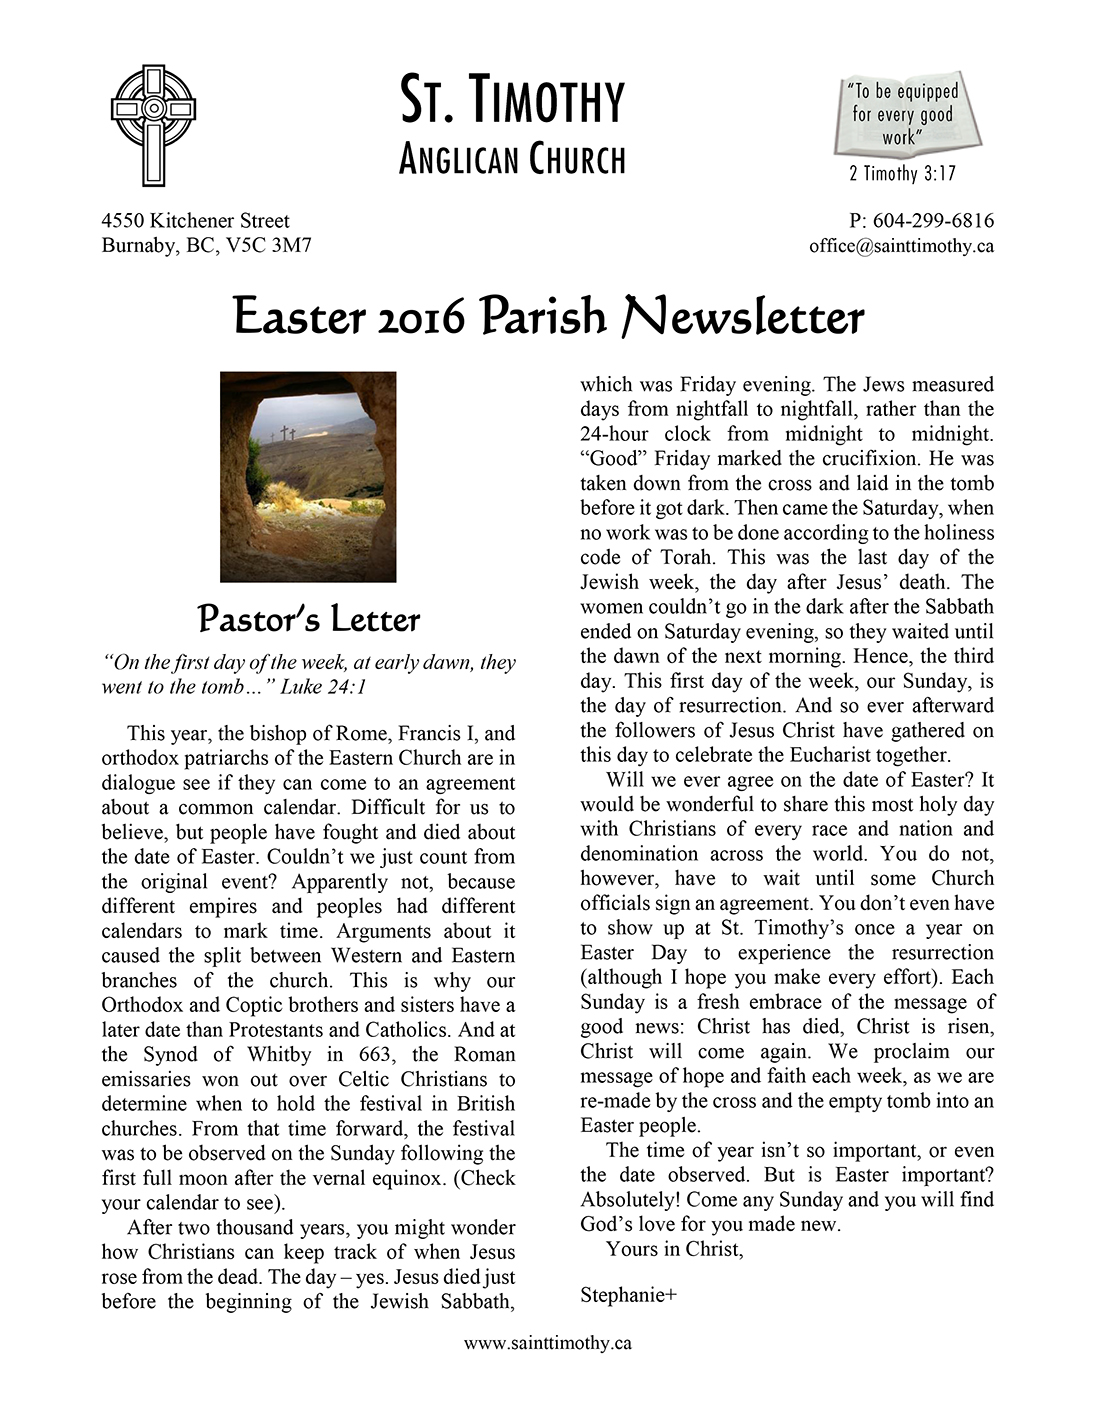 Newsletter: Easter 2016